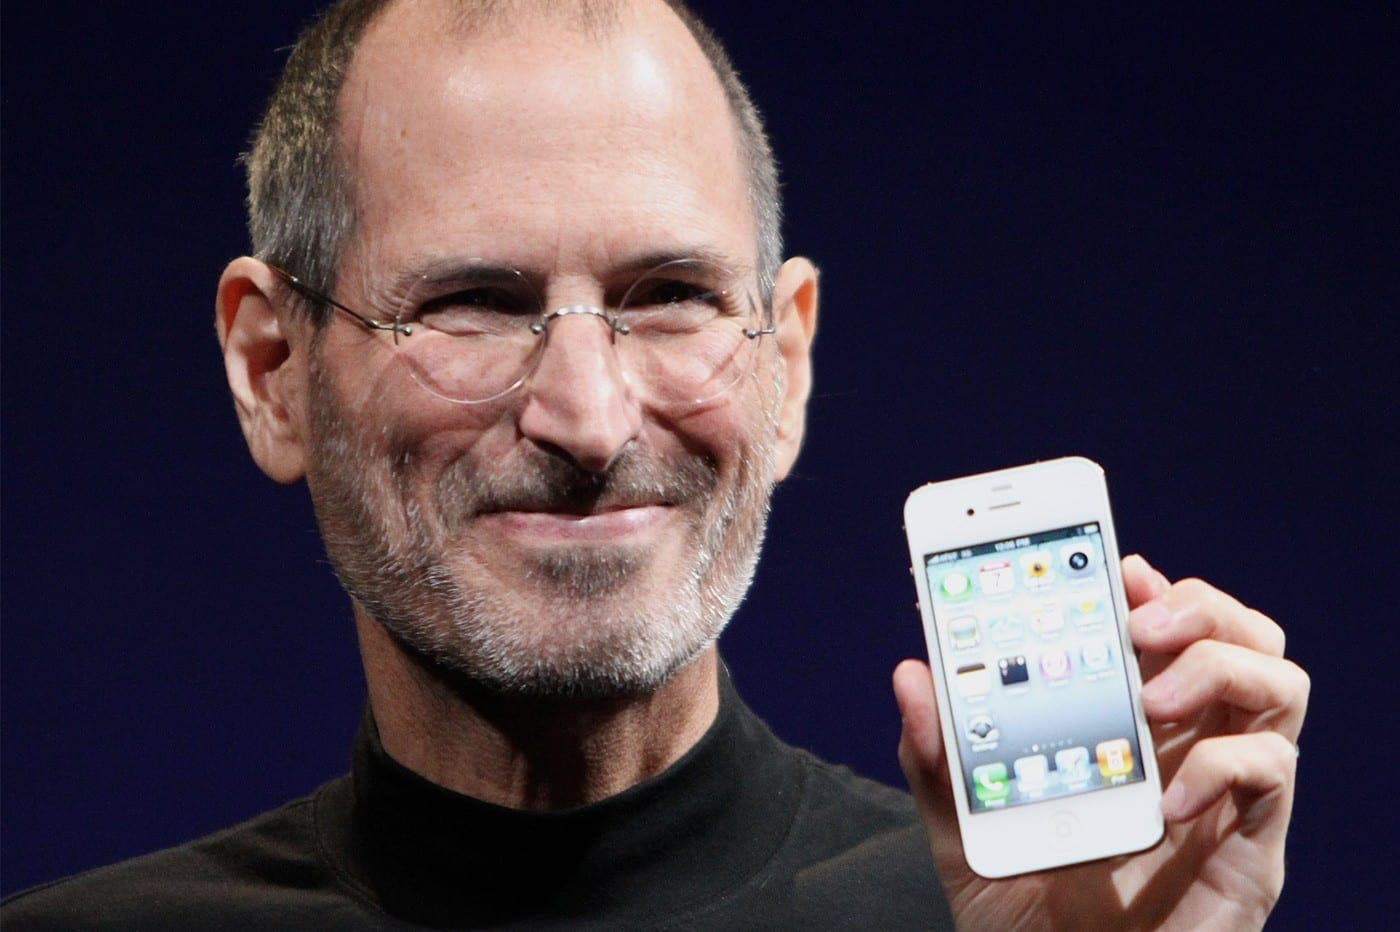 VOICI QUELQUES MAILS DE STEVE JOBS QUI EXPLIQUENT L'ATTITUDE D'APPLE ENVERS AMAZON